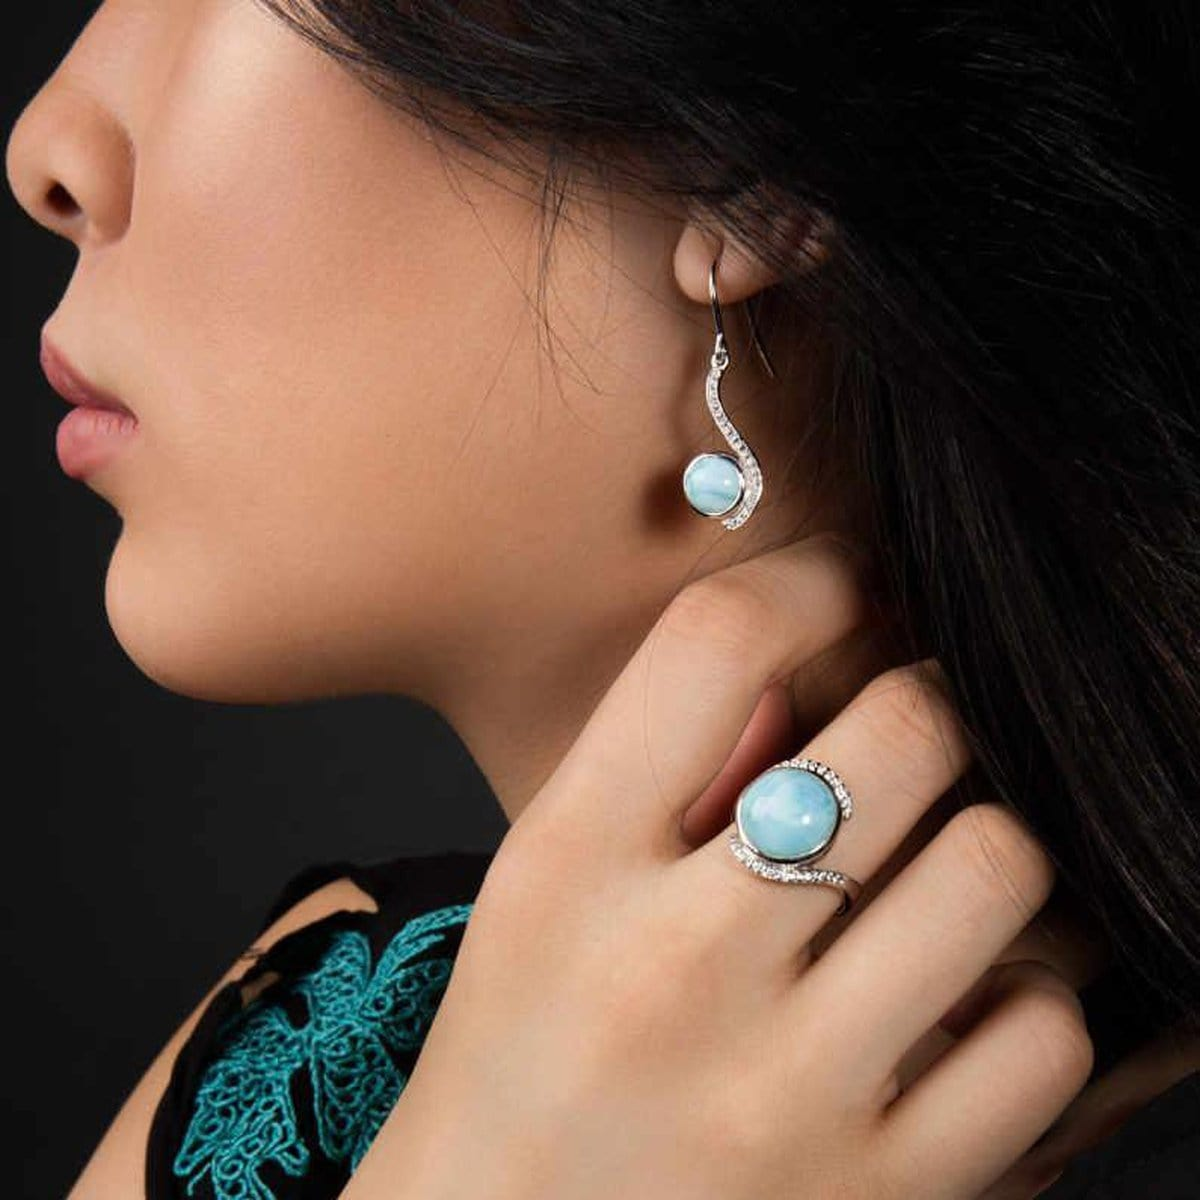 Adella Earrings - Eadel00-00-Marahlago Larimar-Renee Taylor Gallery